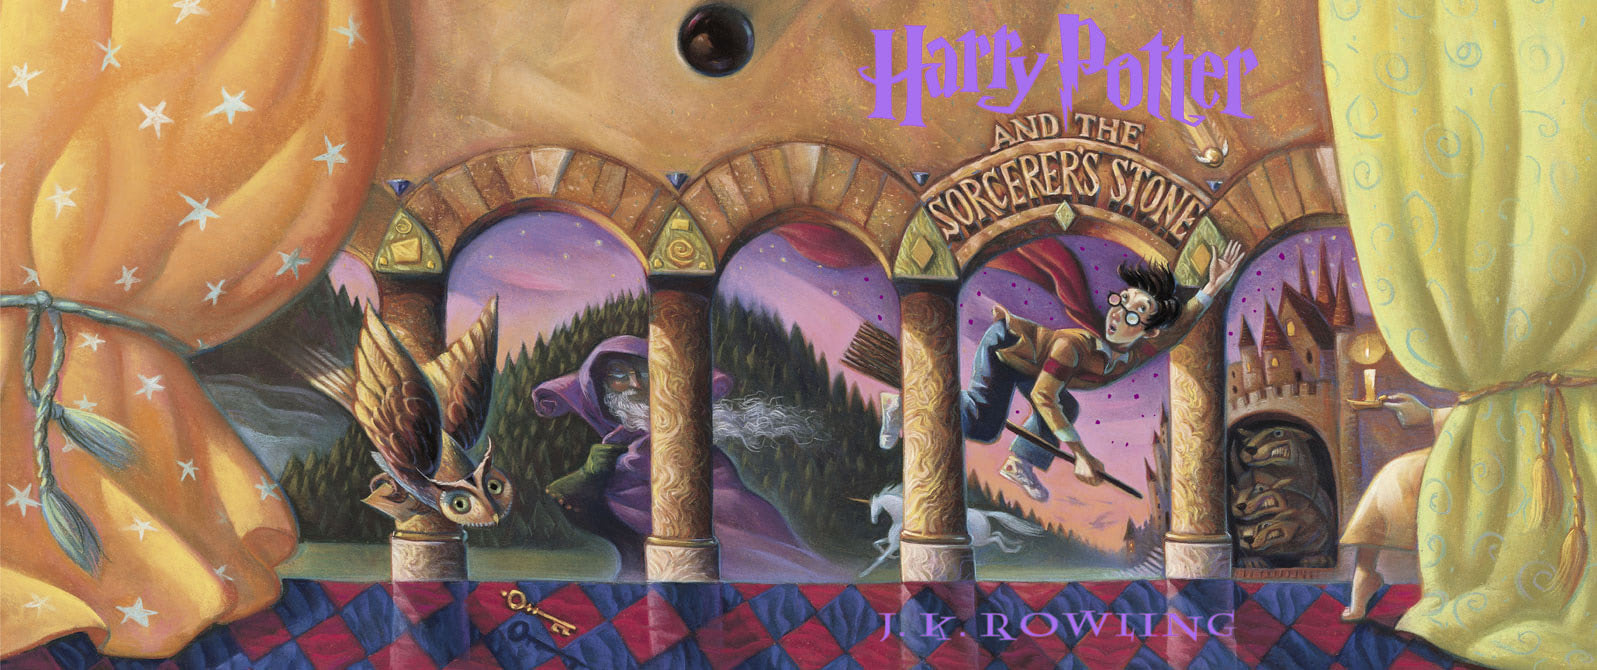 'Sorcerer's Stone' full jacket artwork